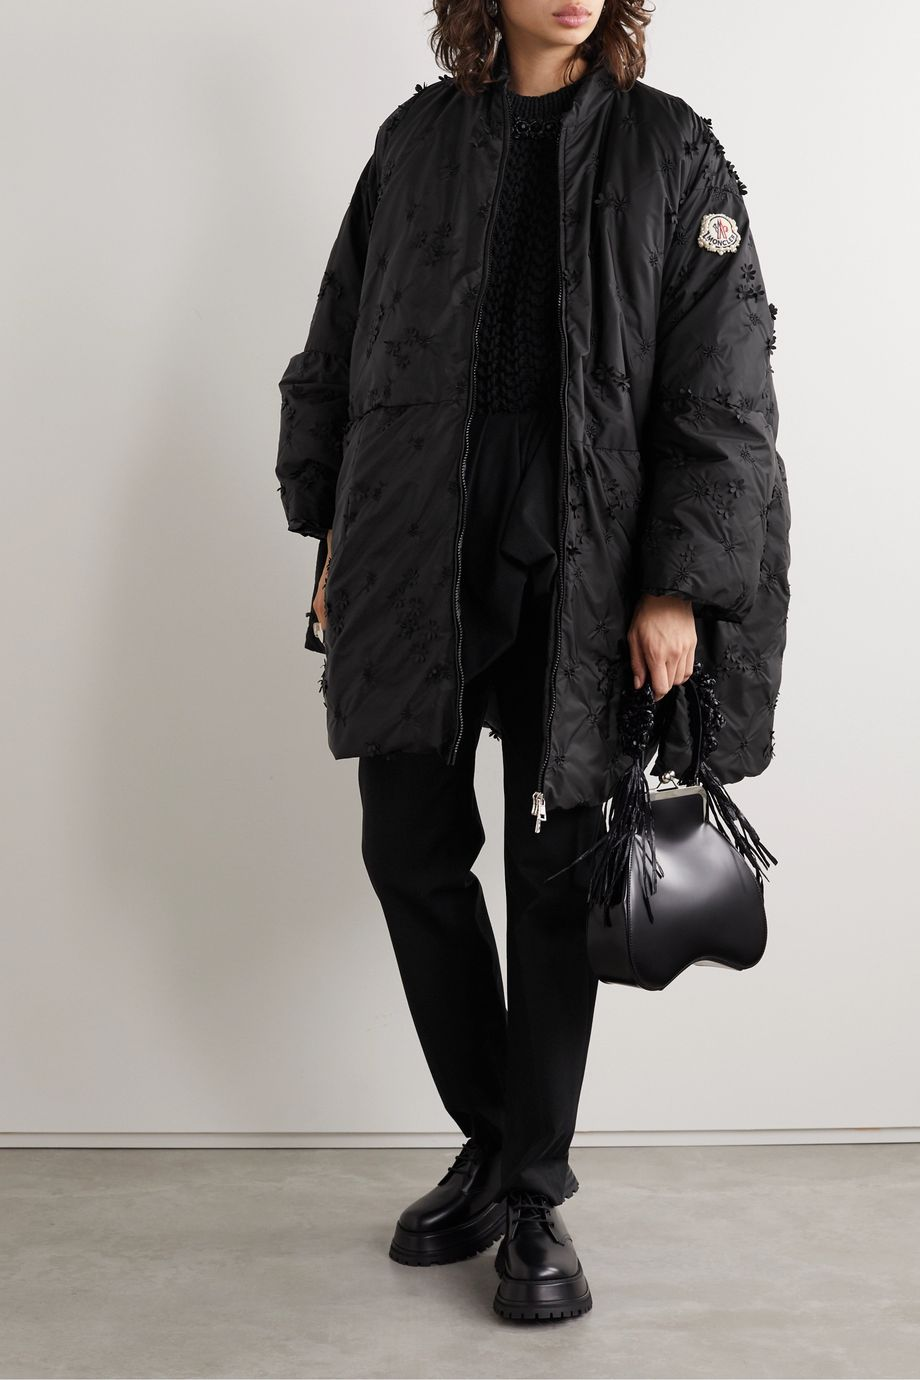 Moncler Genius + 4 Simone Rocha Alpinia appliquéd embroidered quilted shell down coat